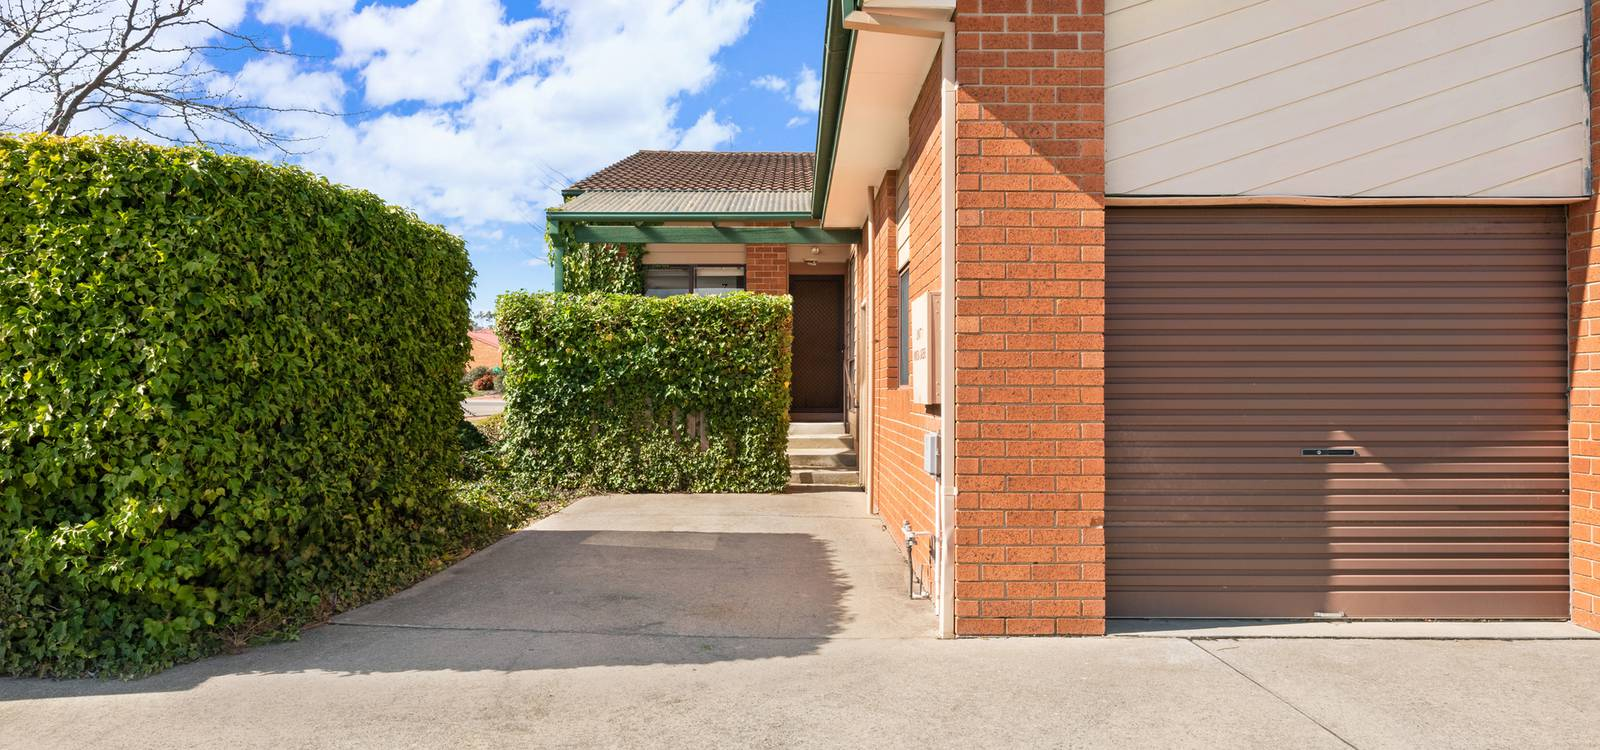 1/3 Redcliffe Street PALMERSTON, ACT 2913 - photo 1